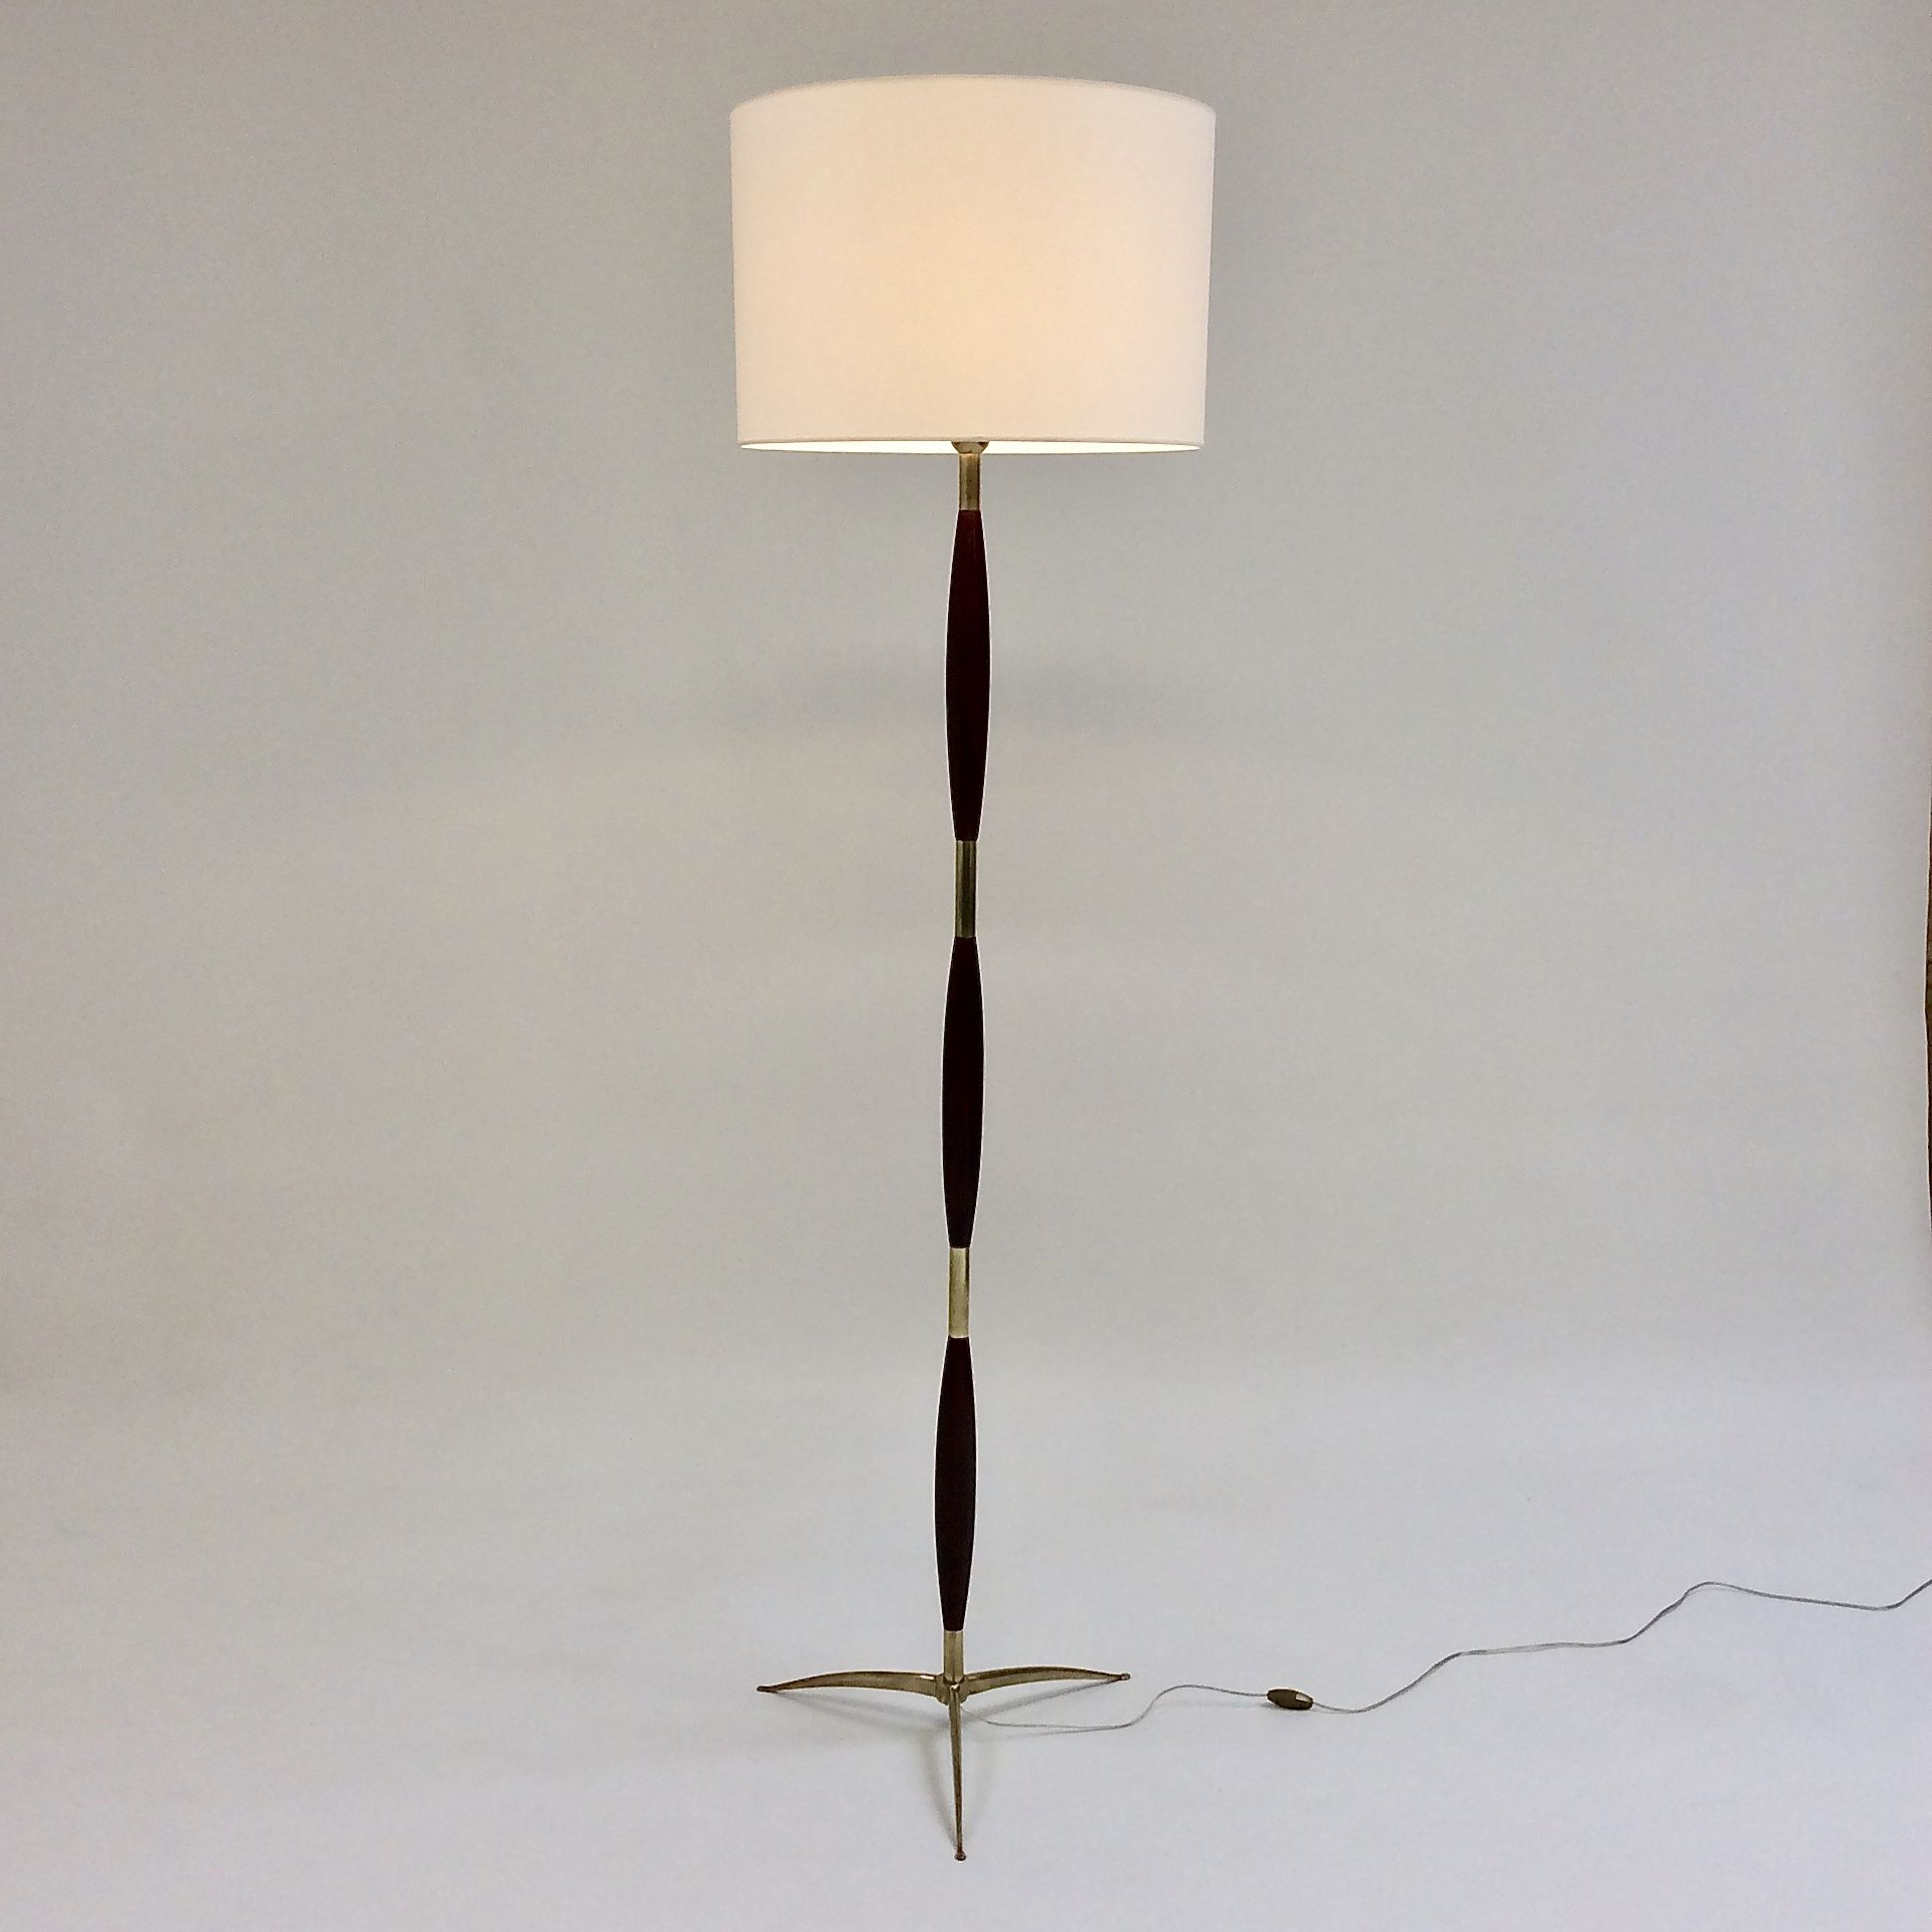 Vintage Wood And Brass Floor Lamp For Stilnovo Italy 1960 Design Market